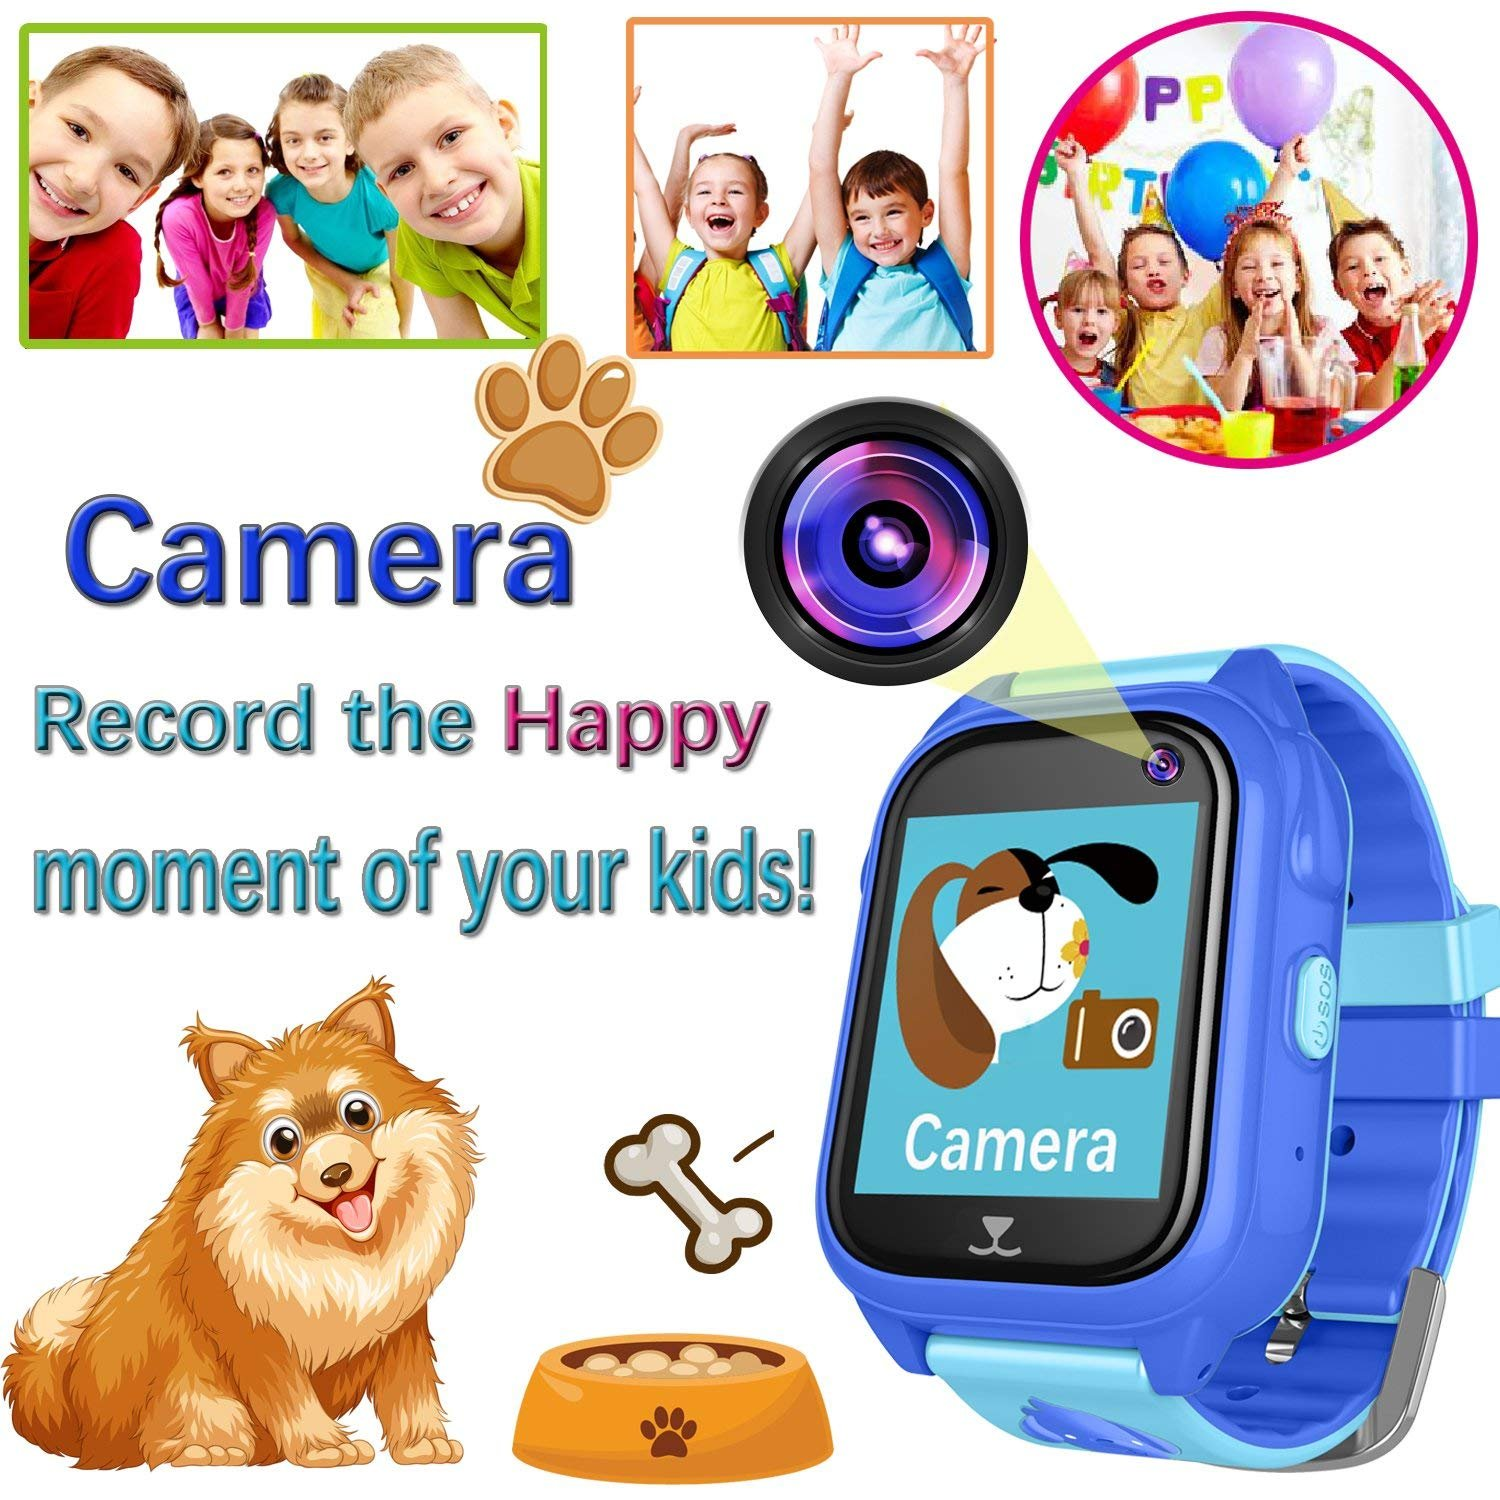 iCooLive Waterproof IP67 Kids Smart Watch Accurate GPS Tracker with FREE SIM CARD for Kid Boys Girls Smartwatch Phone watch Game watch with SOS Call Camera Electronic Learning Toys Birthday Gift by iCooLive (Image #7)